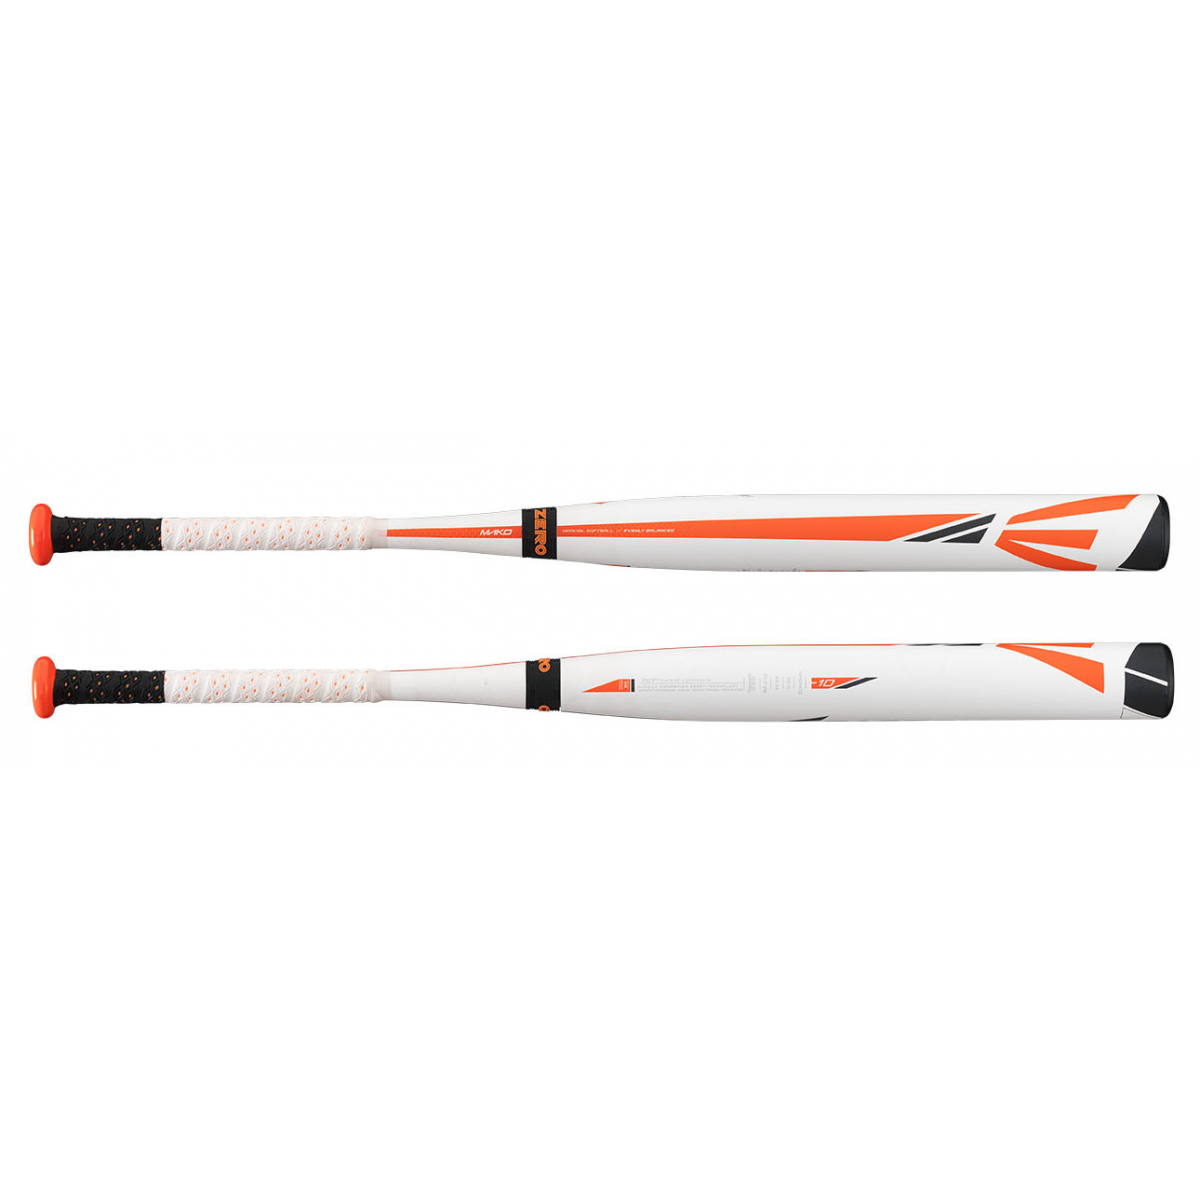 easton-2015-fp15mk10-mako-cxn-zero-10-fastpitch-softball-bat-34-inch-24-ounce FP15MK10-34-inch-24-oz Easton  Easton Mako Fast Pitch Softball Bat. CXN zero 2-piece composite speed